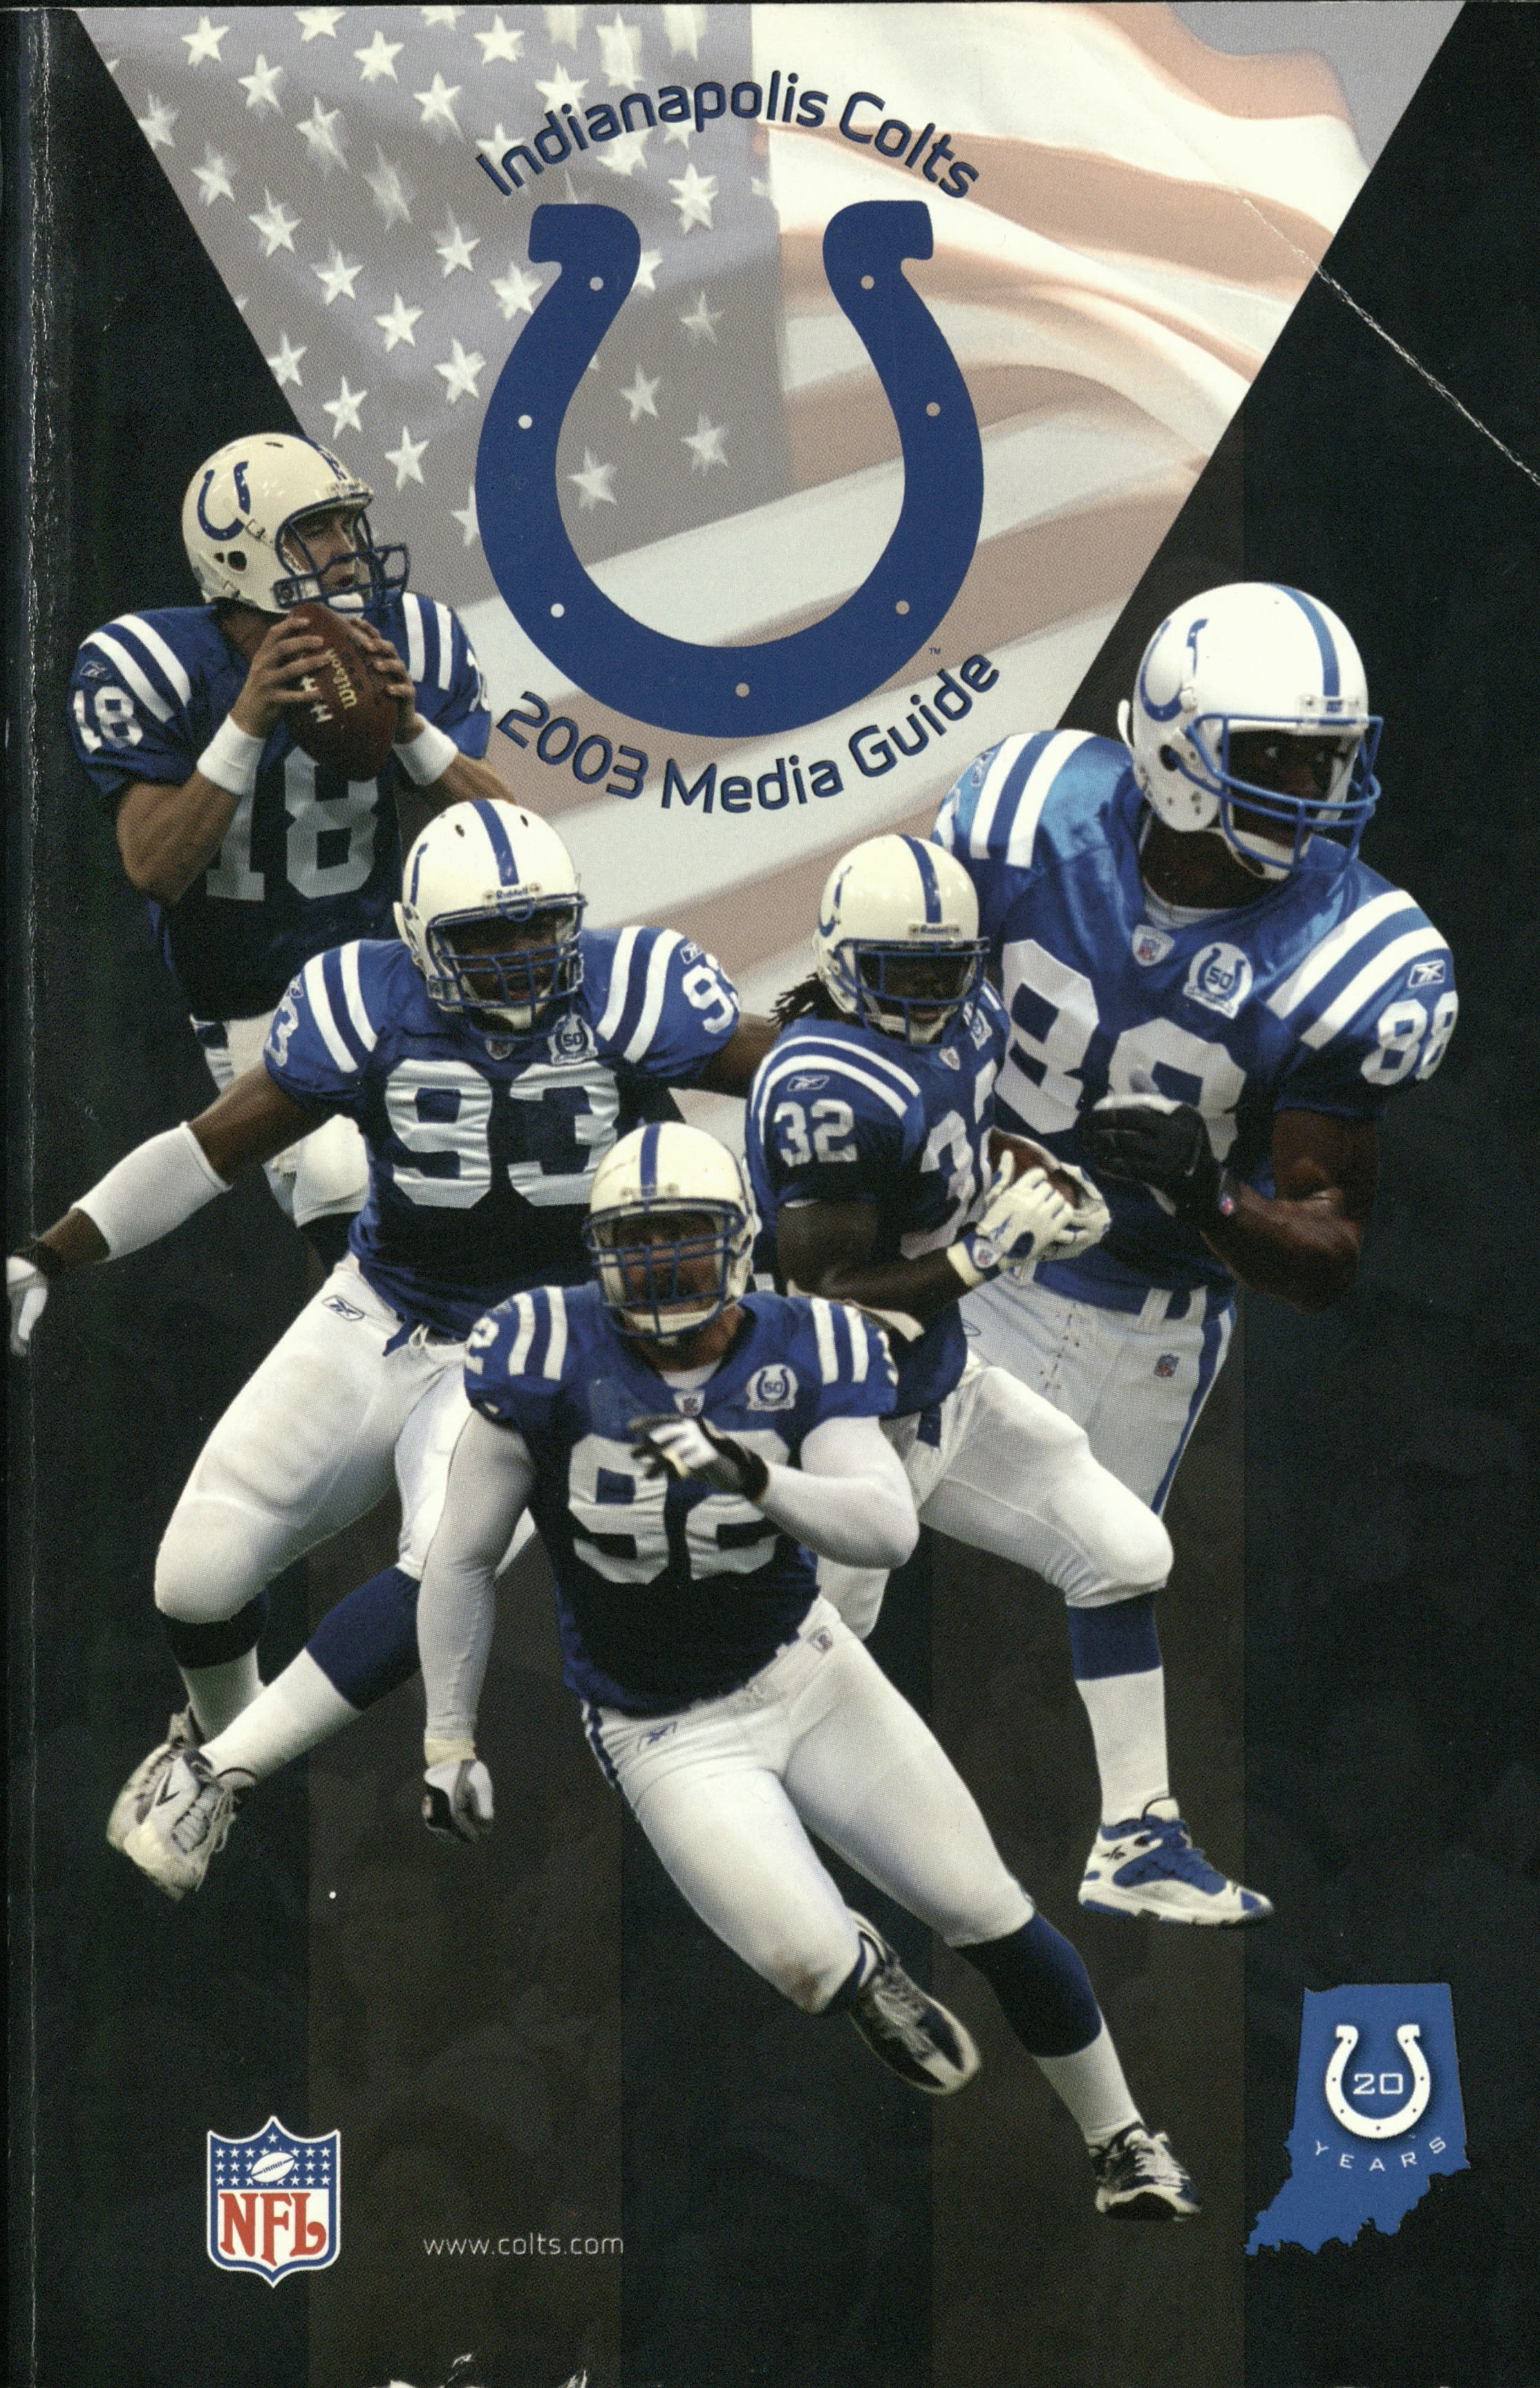 COLTS_2003_Cover